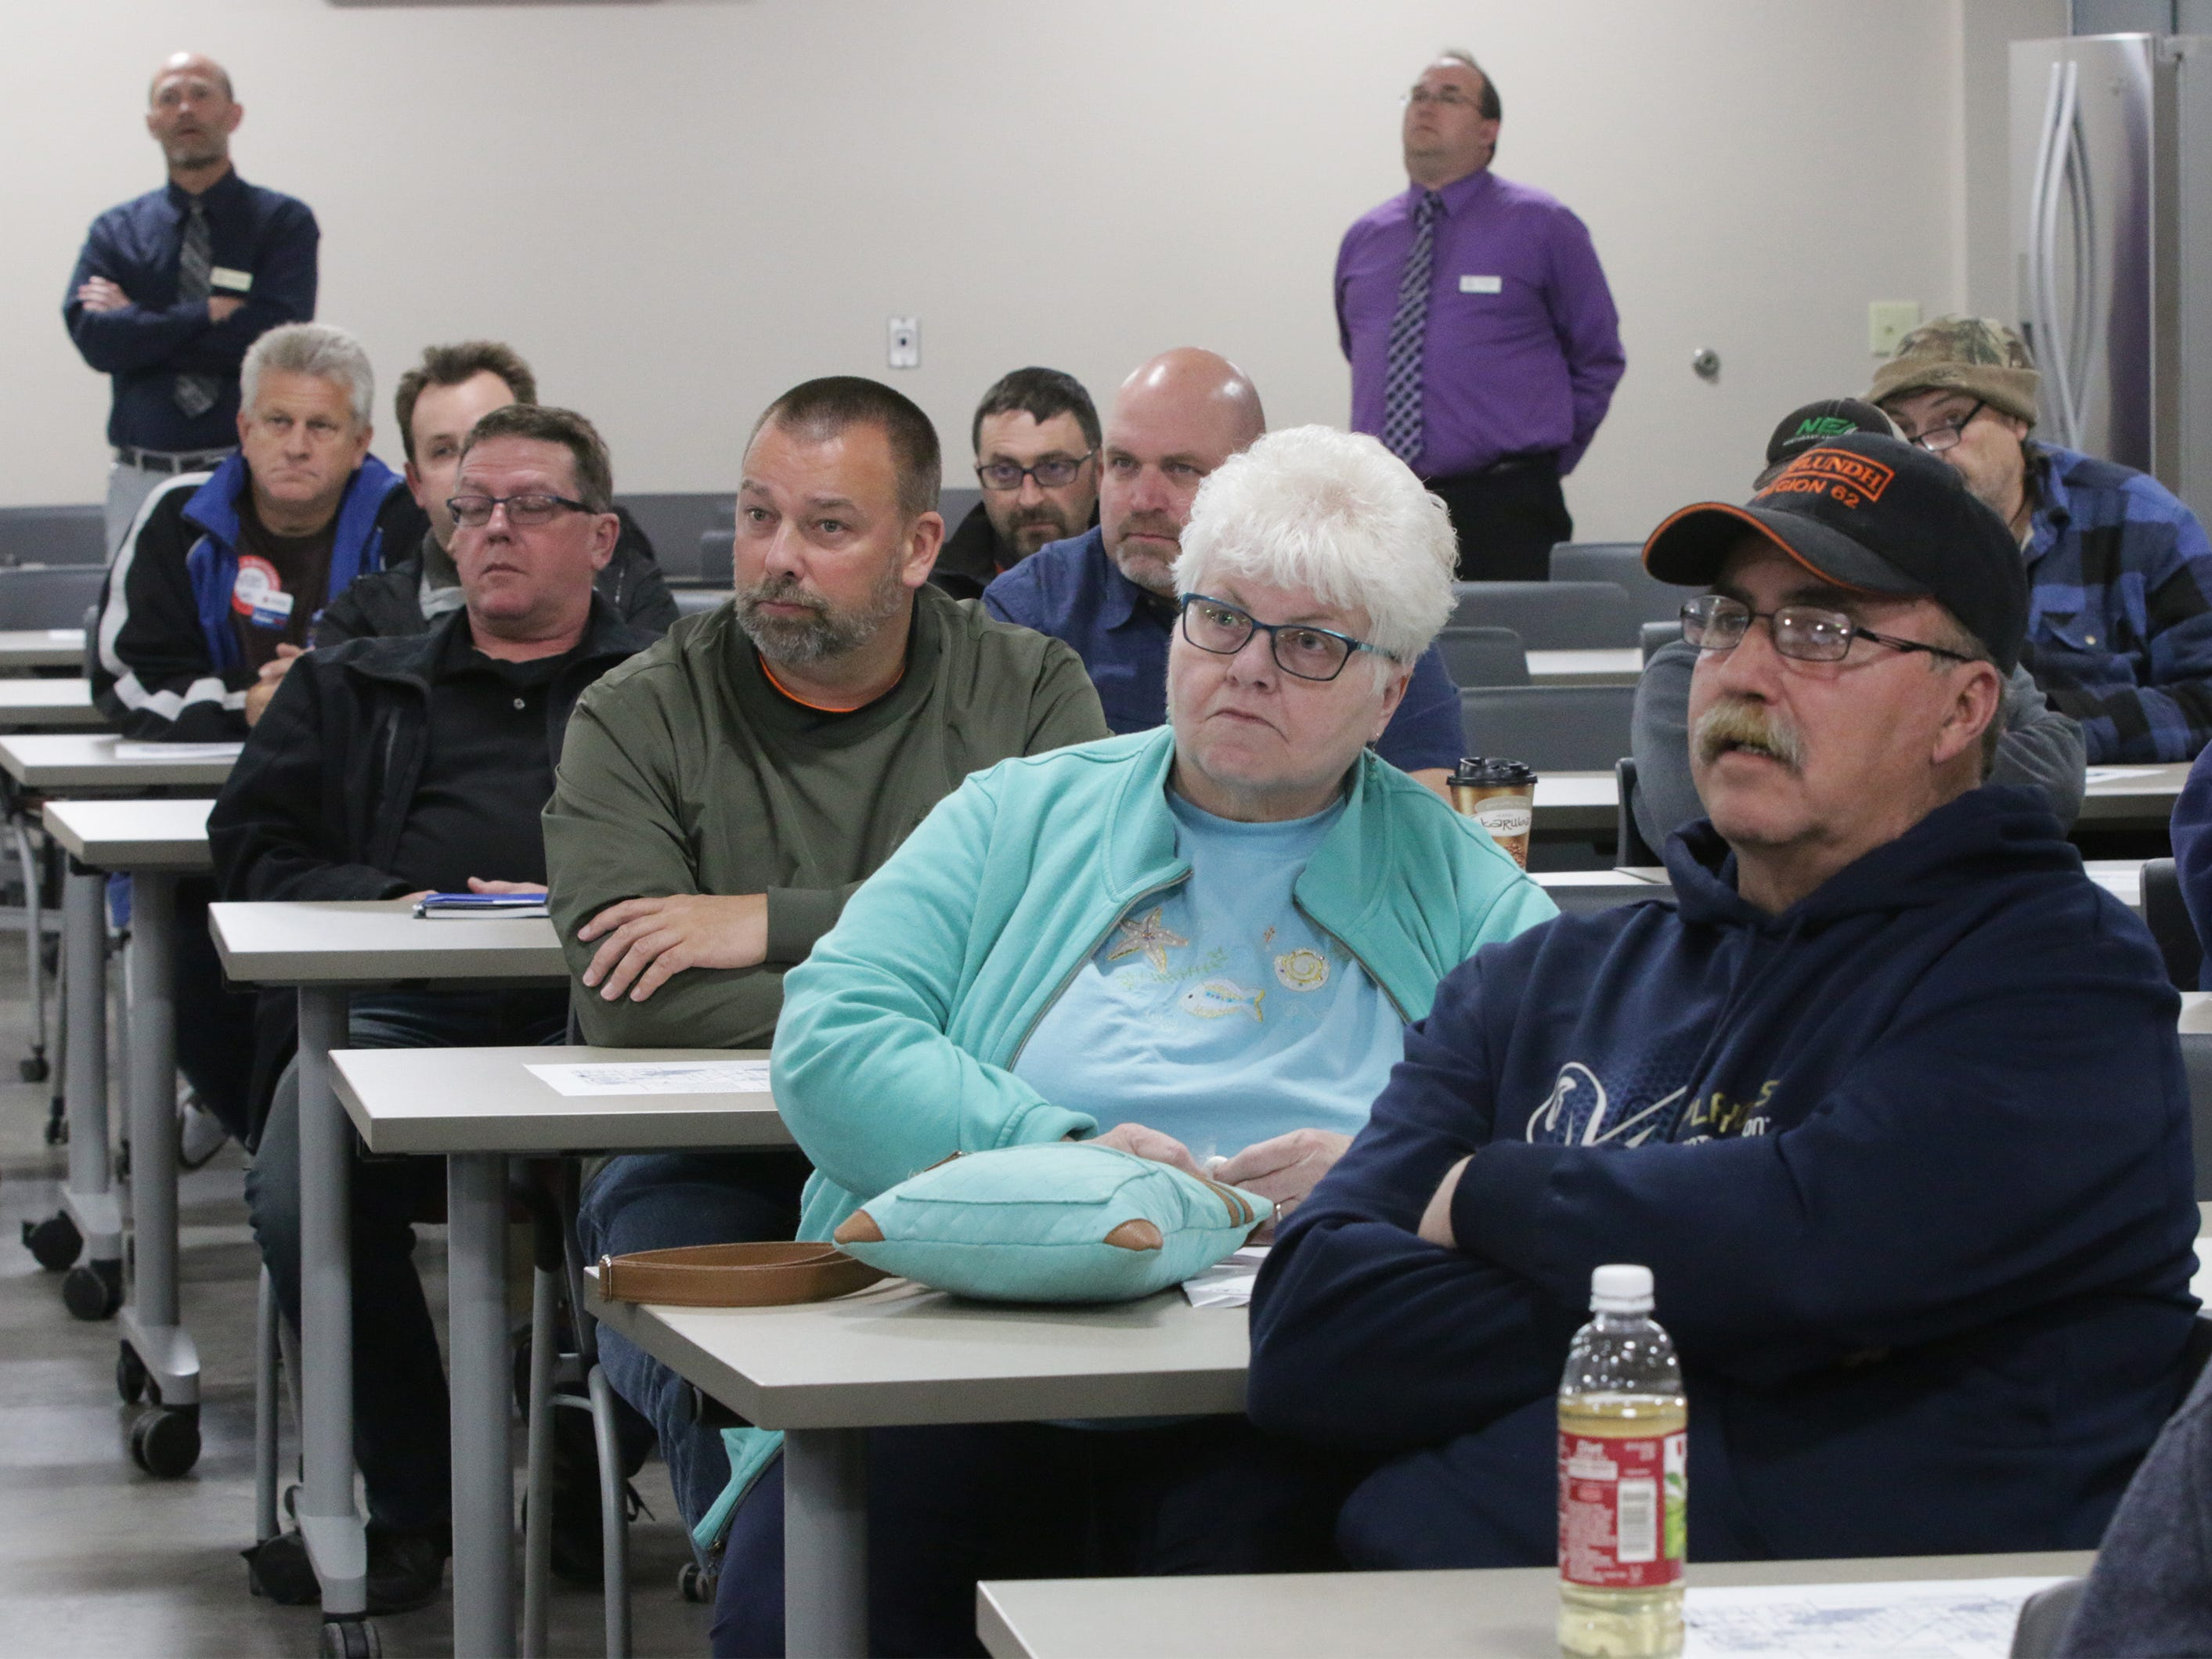 People listen to a discussion of the state Highway 23 four-lane construction project during a meeting at the Sheboygan County Transportation facility, Thursday, May 9, 2019, in Plymouth, Wis.